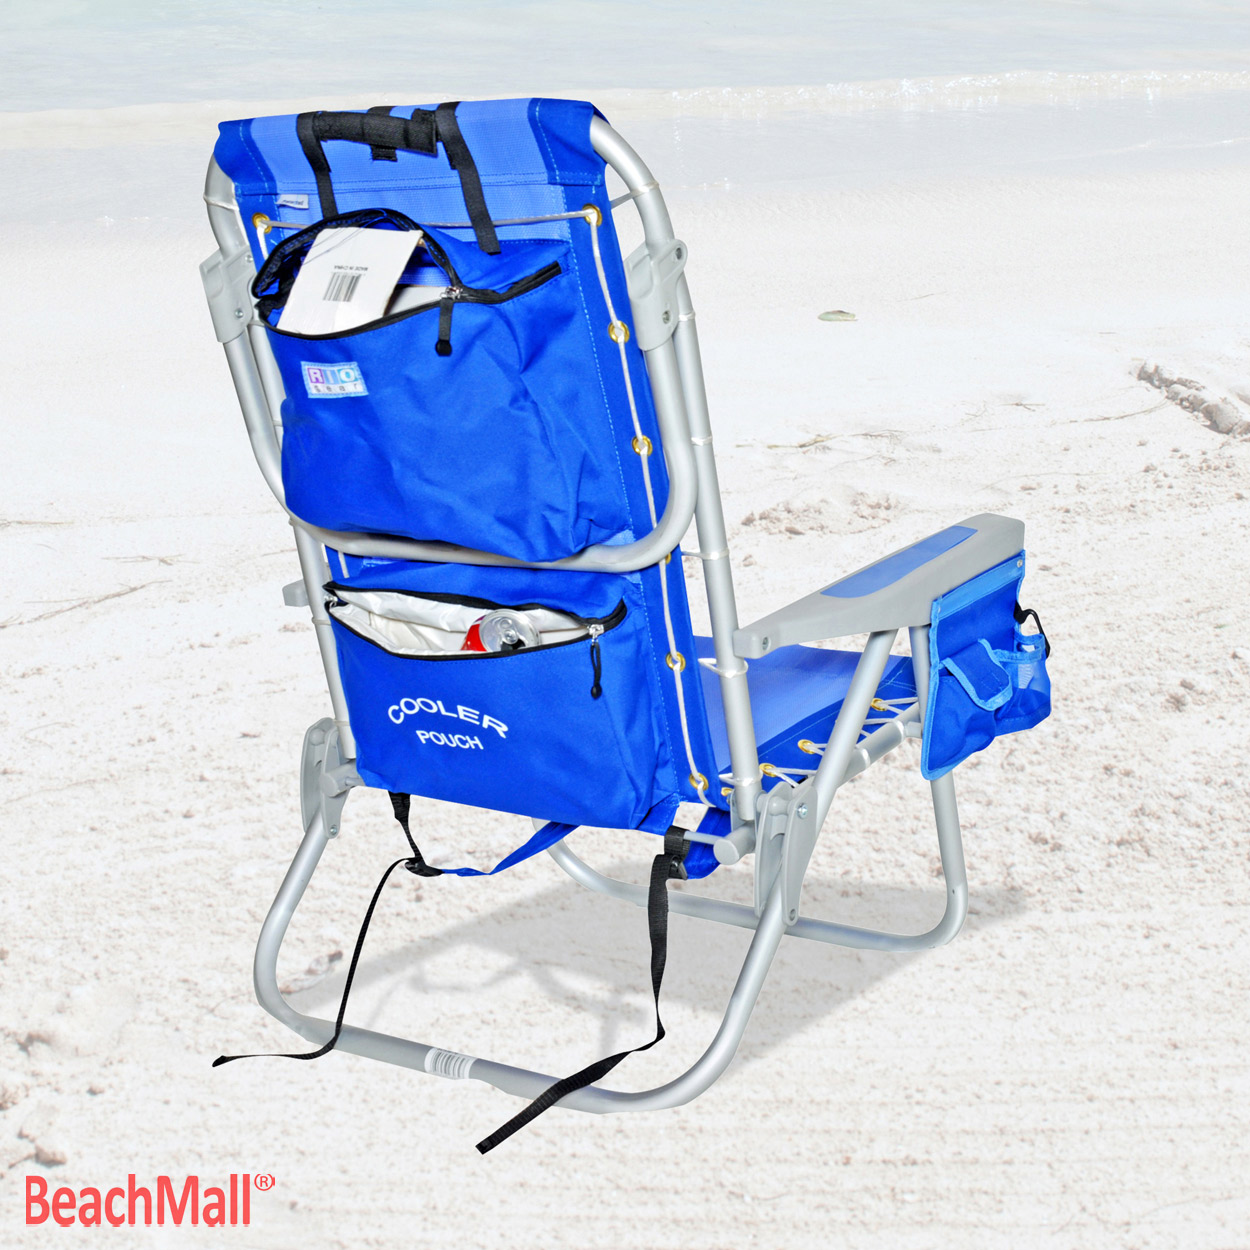 Rio 5 pos LayFlat Ultimate Backpack Beach Chair w cooler